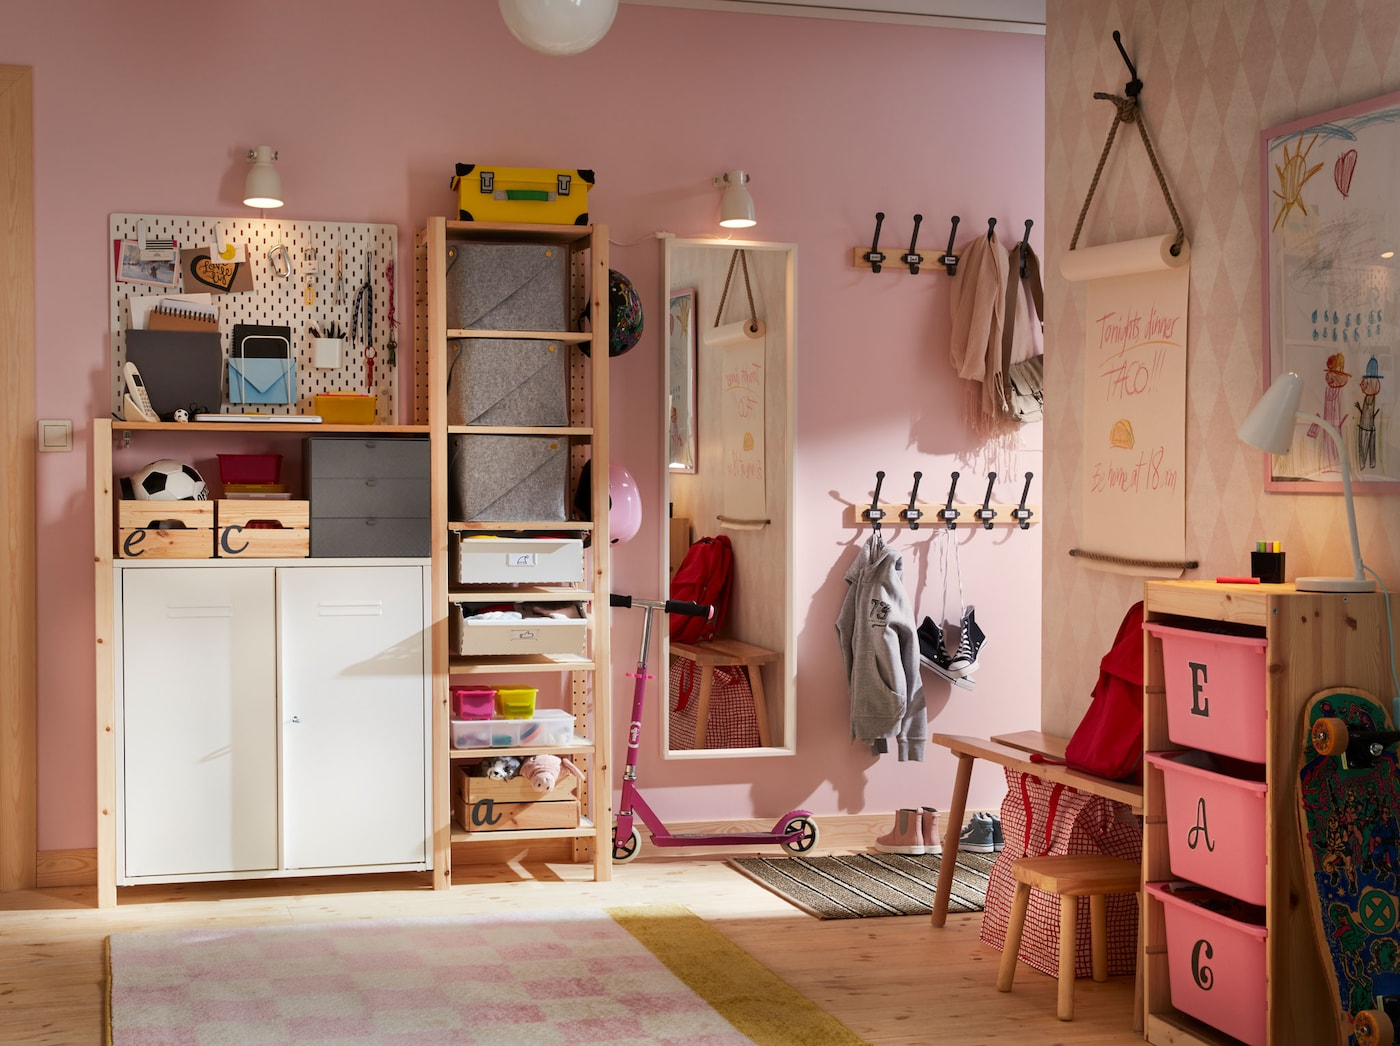 A pink and white hall with a practical IVAR combination of three elements in combination with storage cabinets, wall shelves and a white SKÅDIS pegboard.